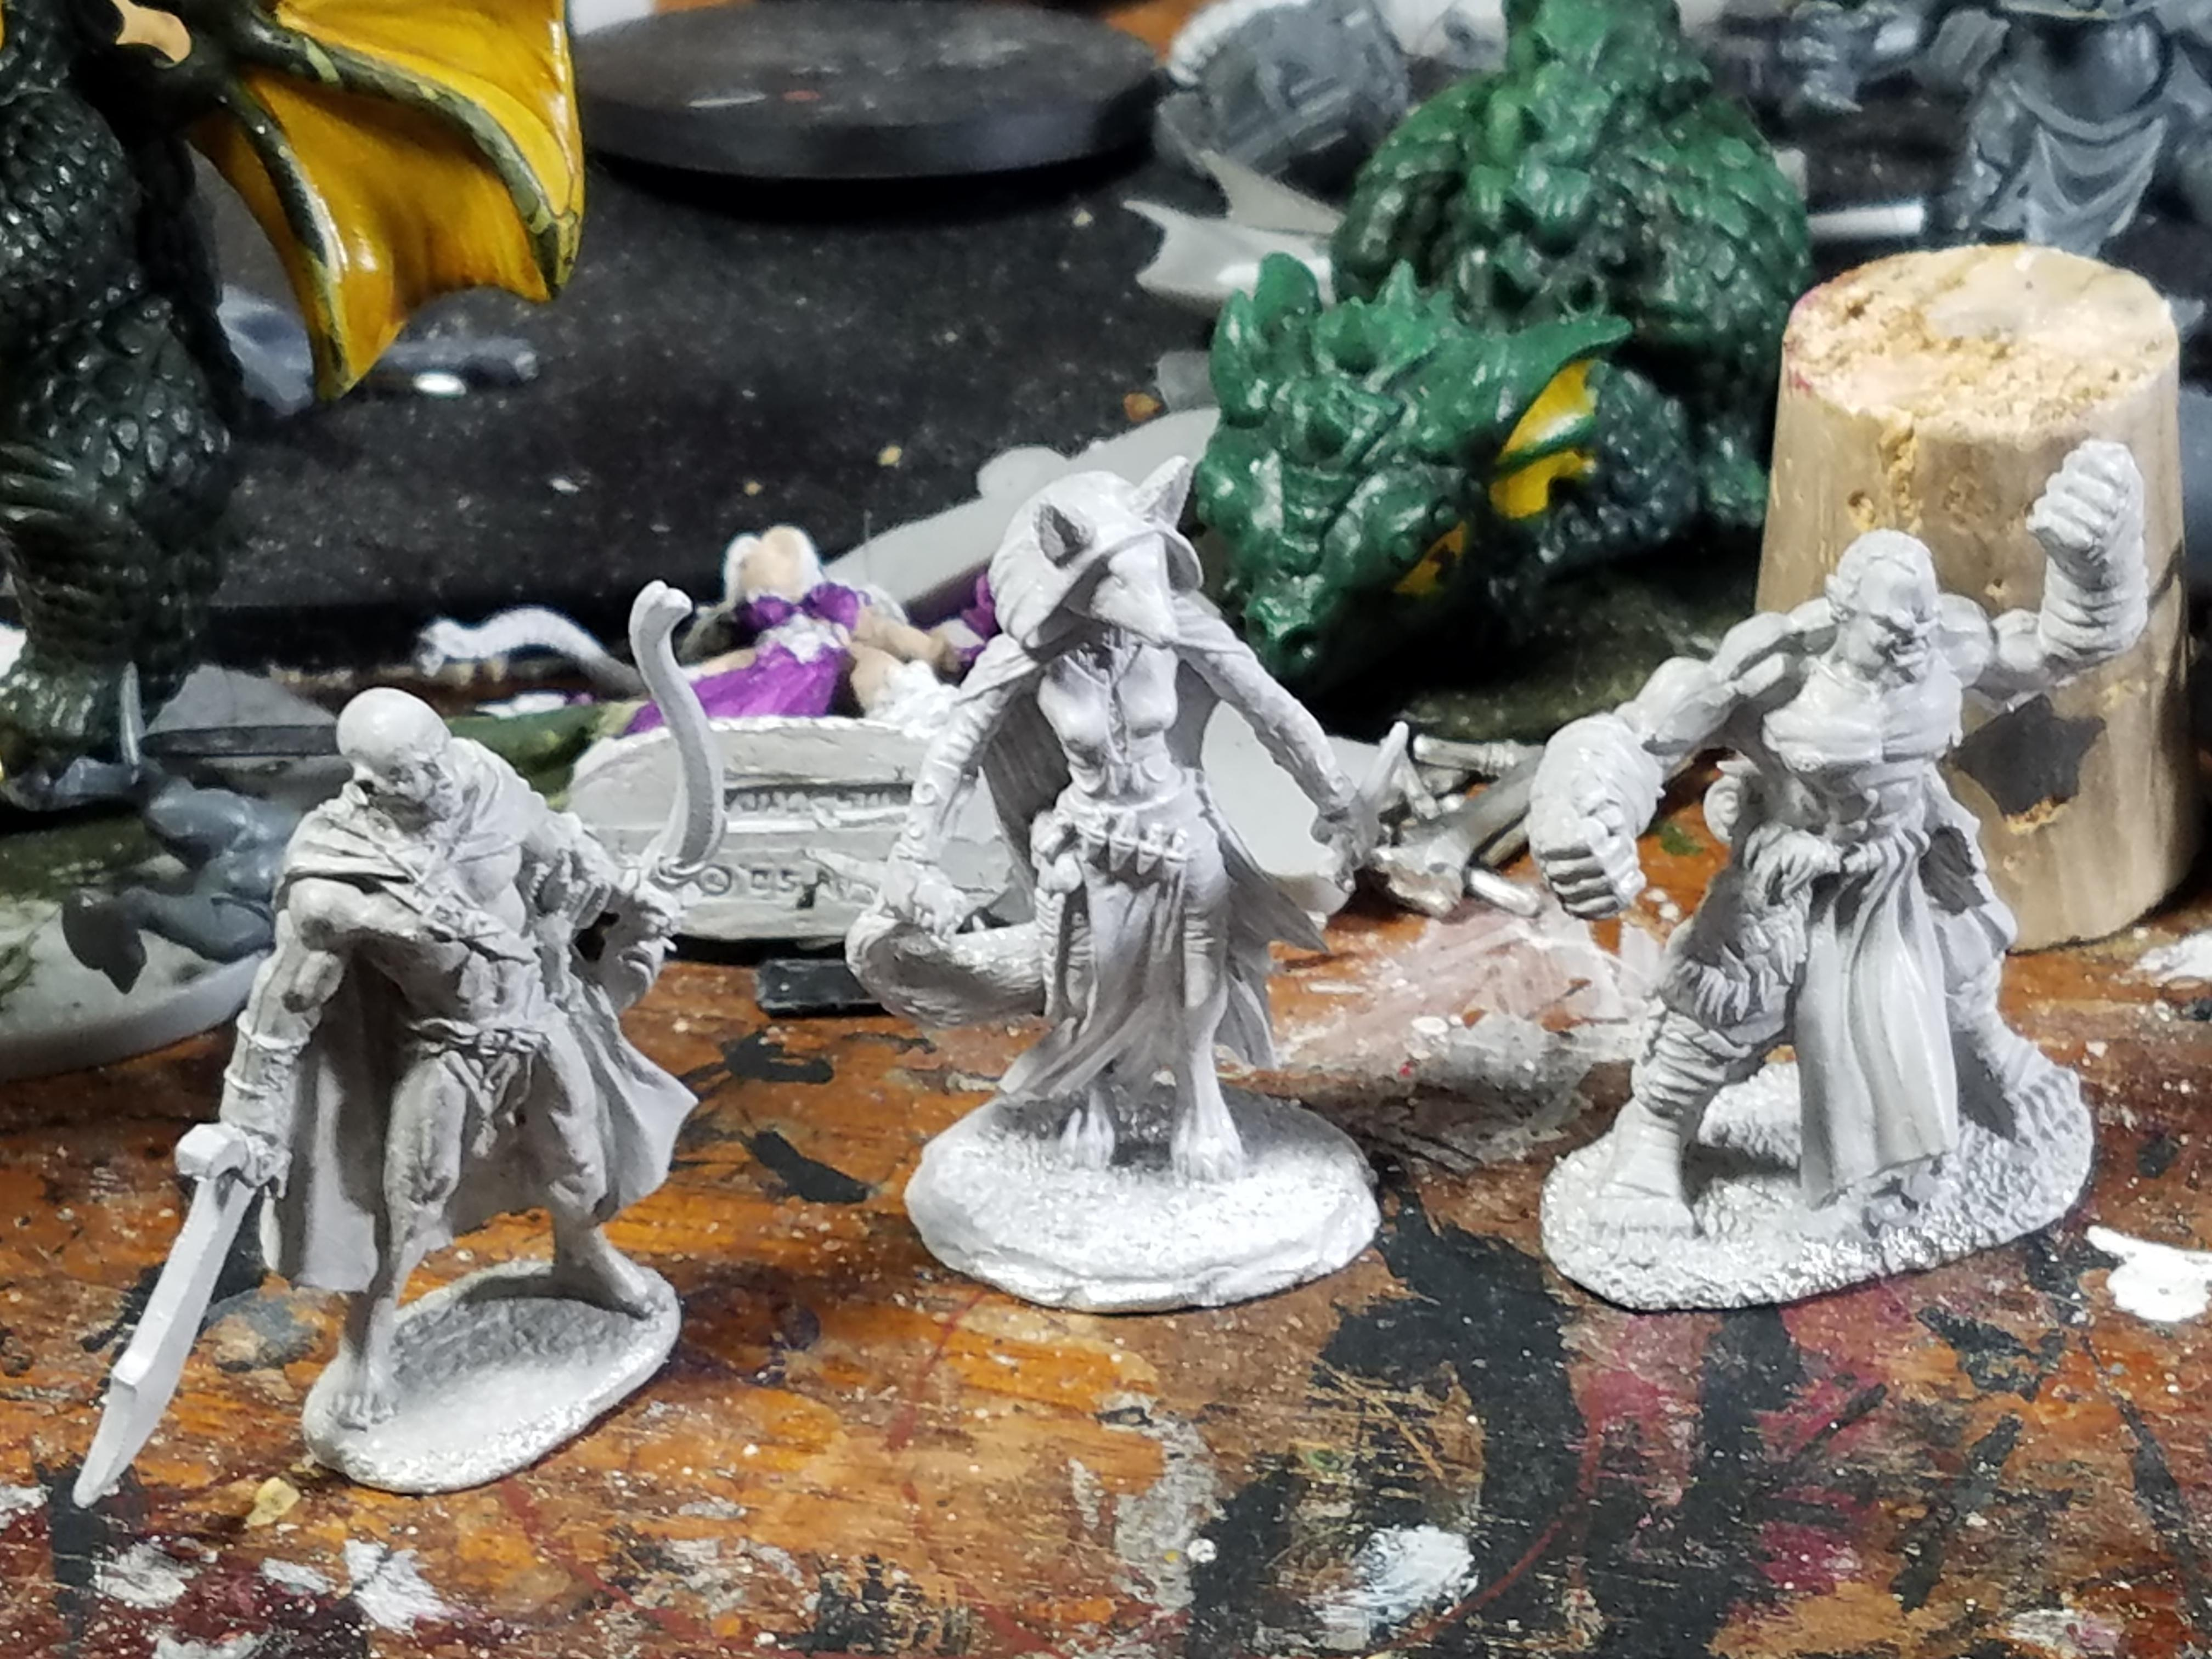 Adventurers, Bowman, Dark Sword Miniatures, Fox Person, Human, Kitsune, Monk, Orks, Rangers, Reaper Miniatures, Rogue